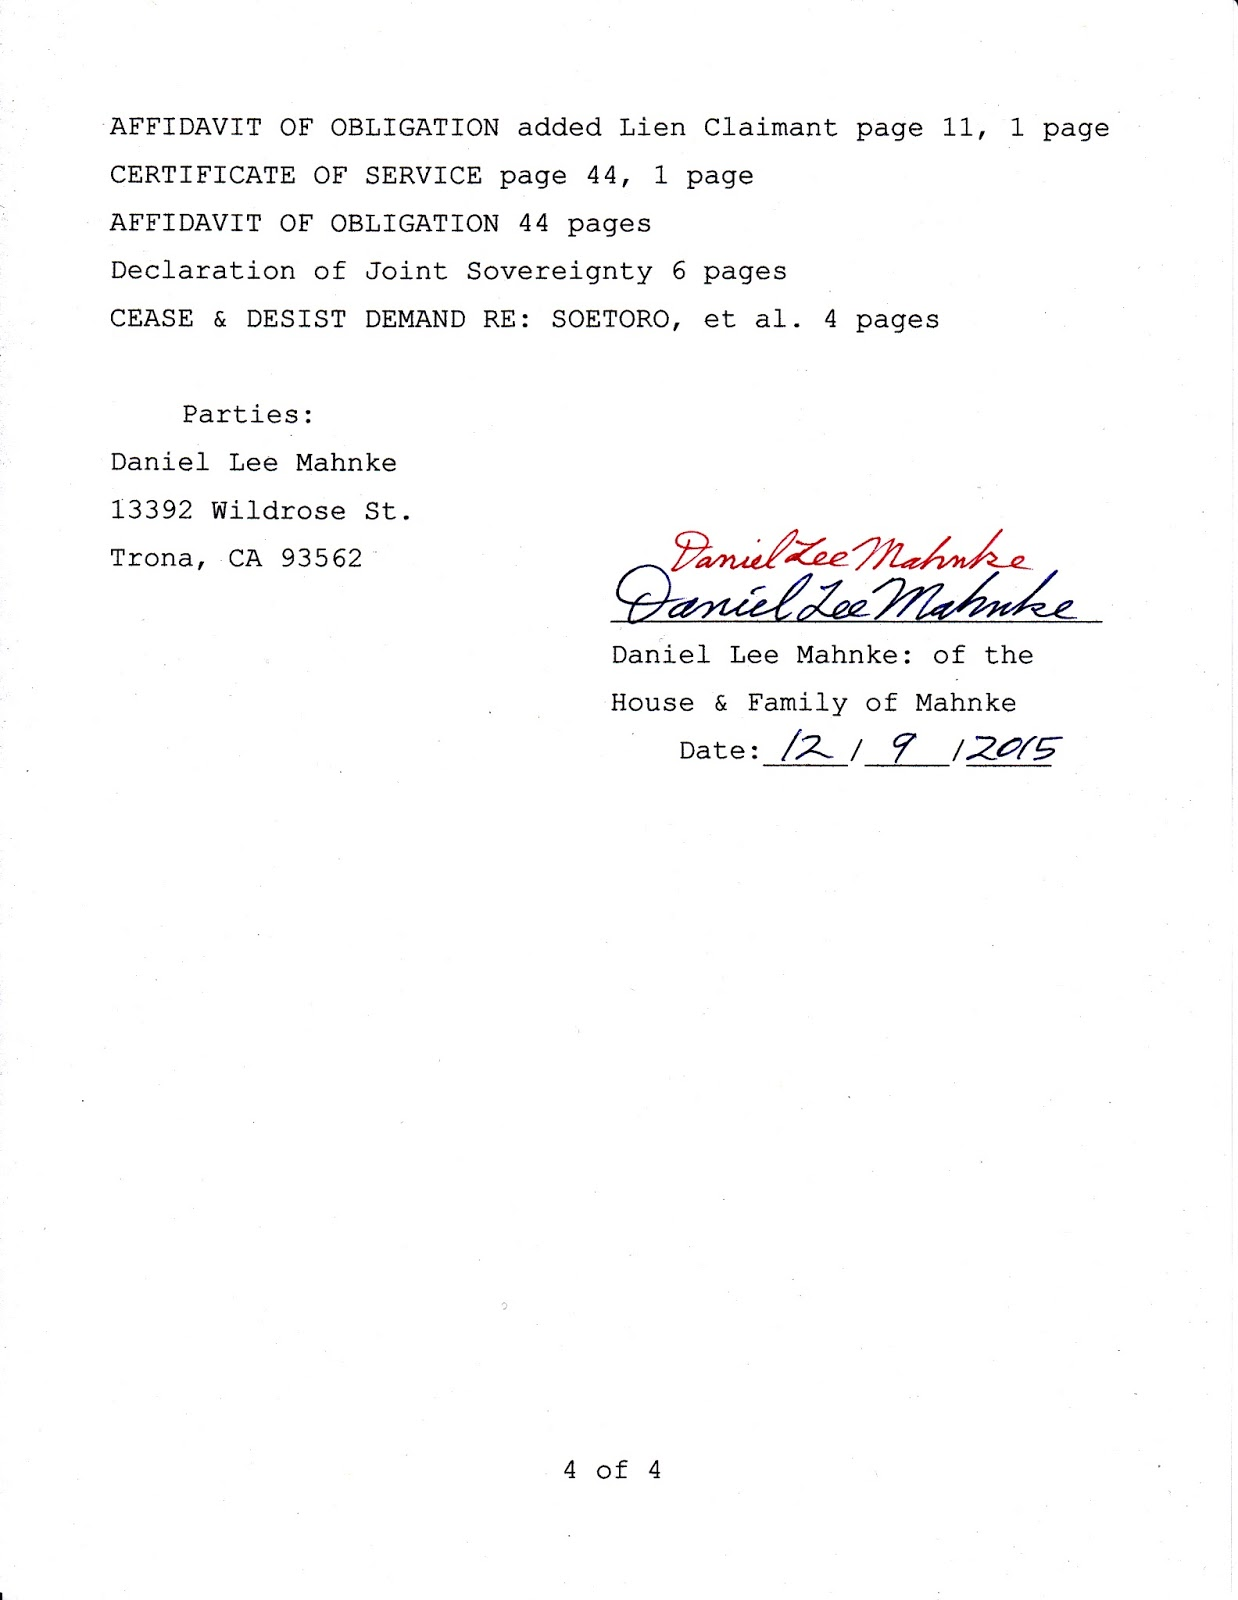 Nesaranews constitution and founding documents affidavit on this is for sheriff john mcmahon of san bernardino county california to comply with the international commercial obligation lien indictment that has been 1betcityfo Images